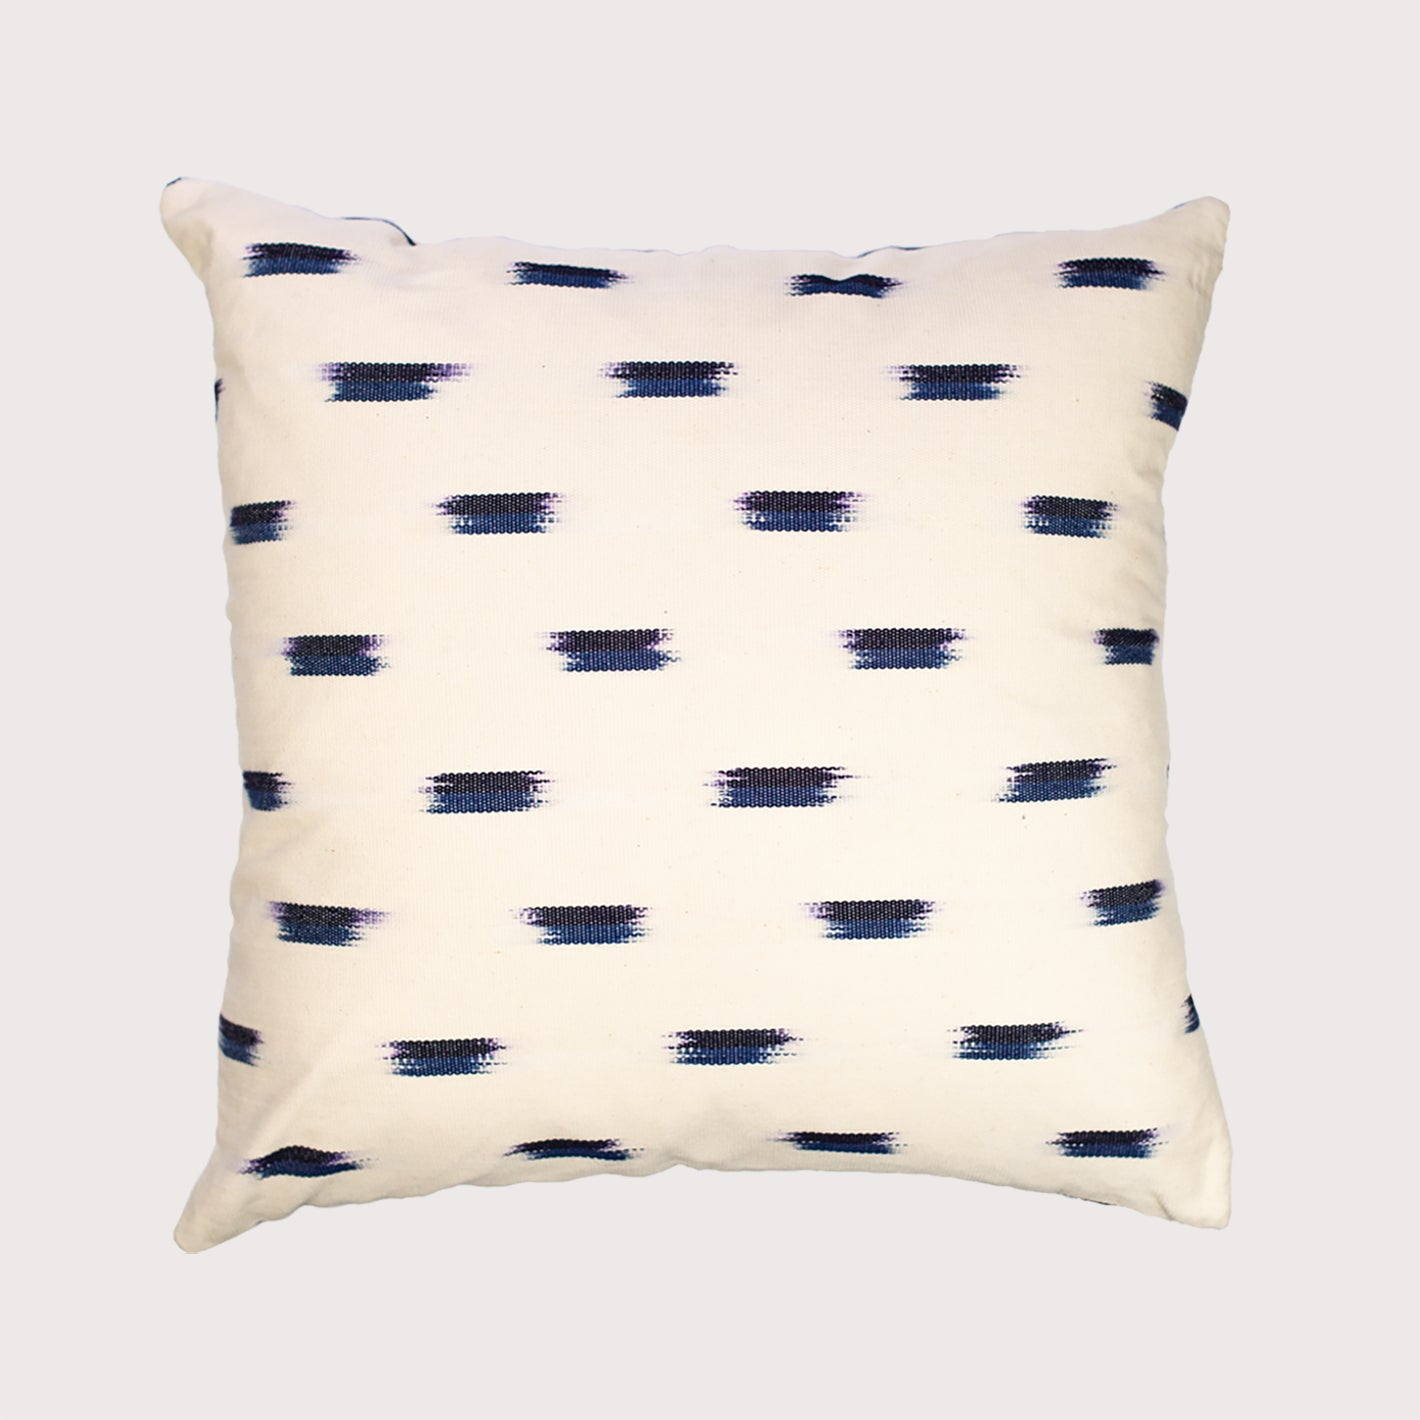 Ikat - blue dots Pixan Pillow - White Label Project